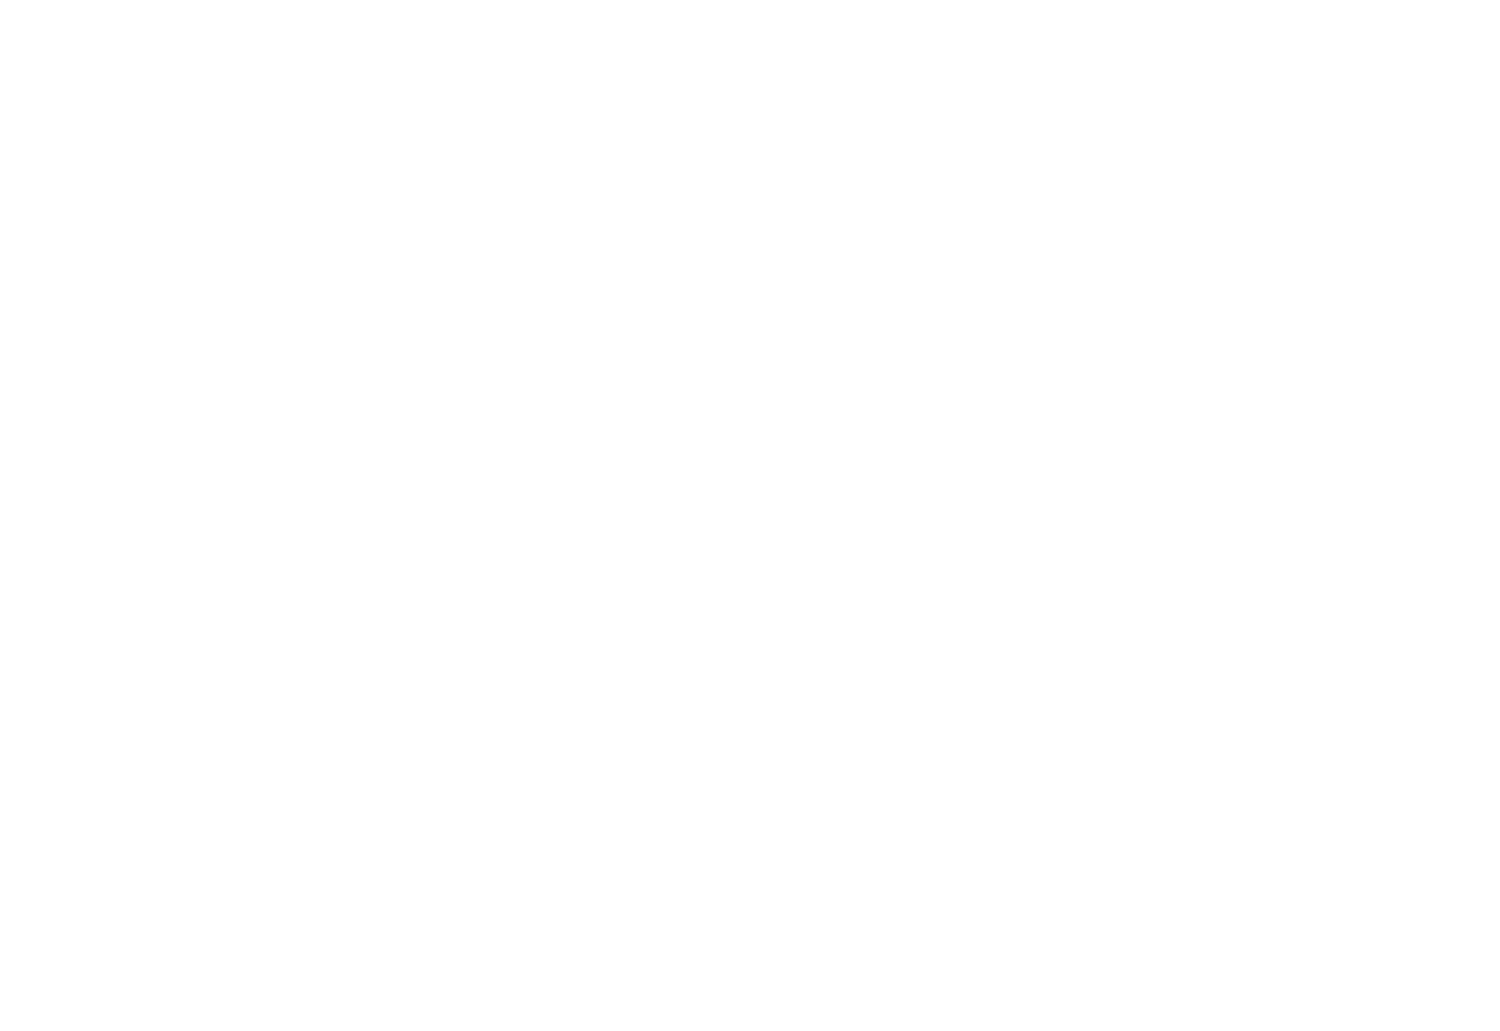 Malibu Surfing Association